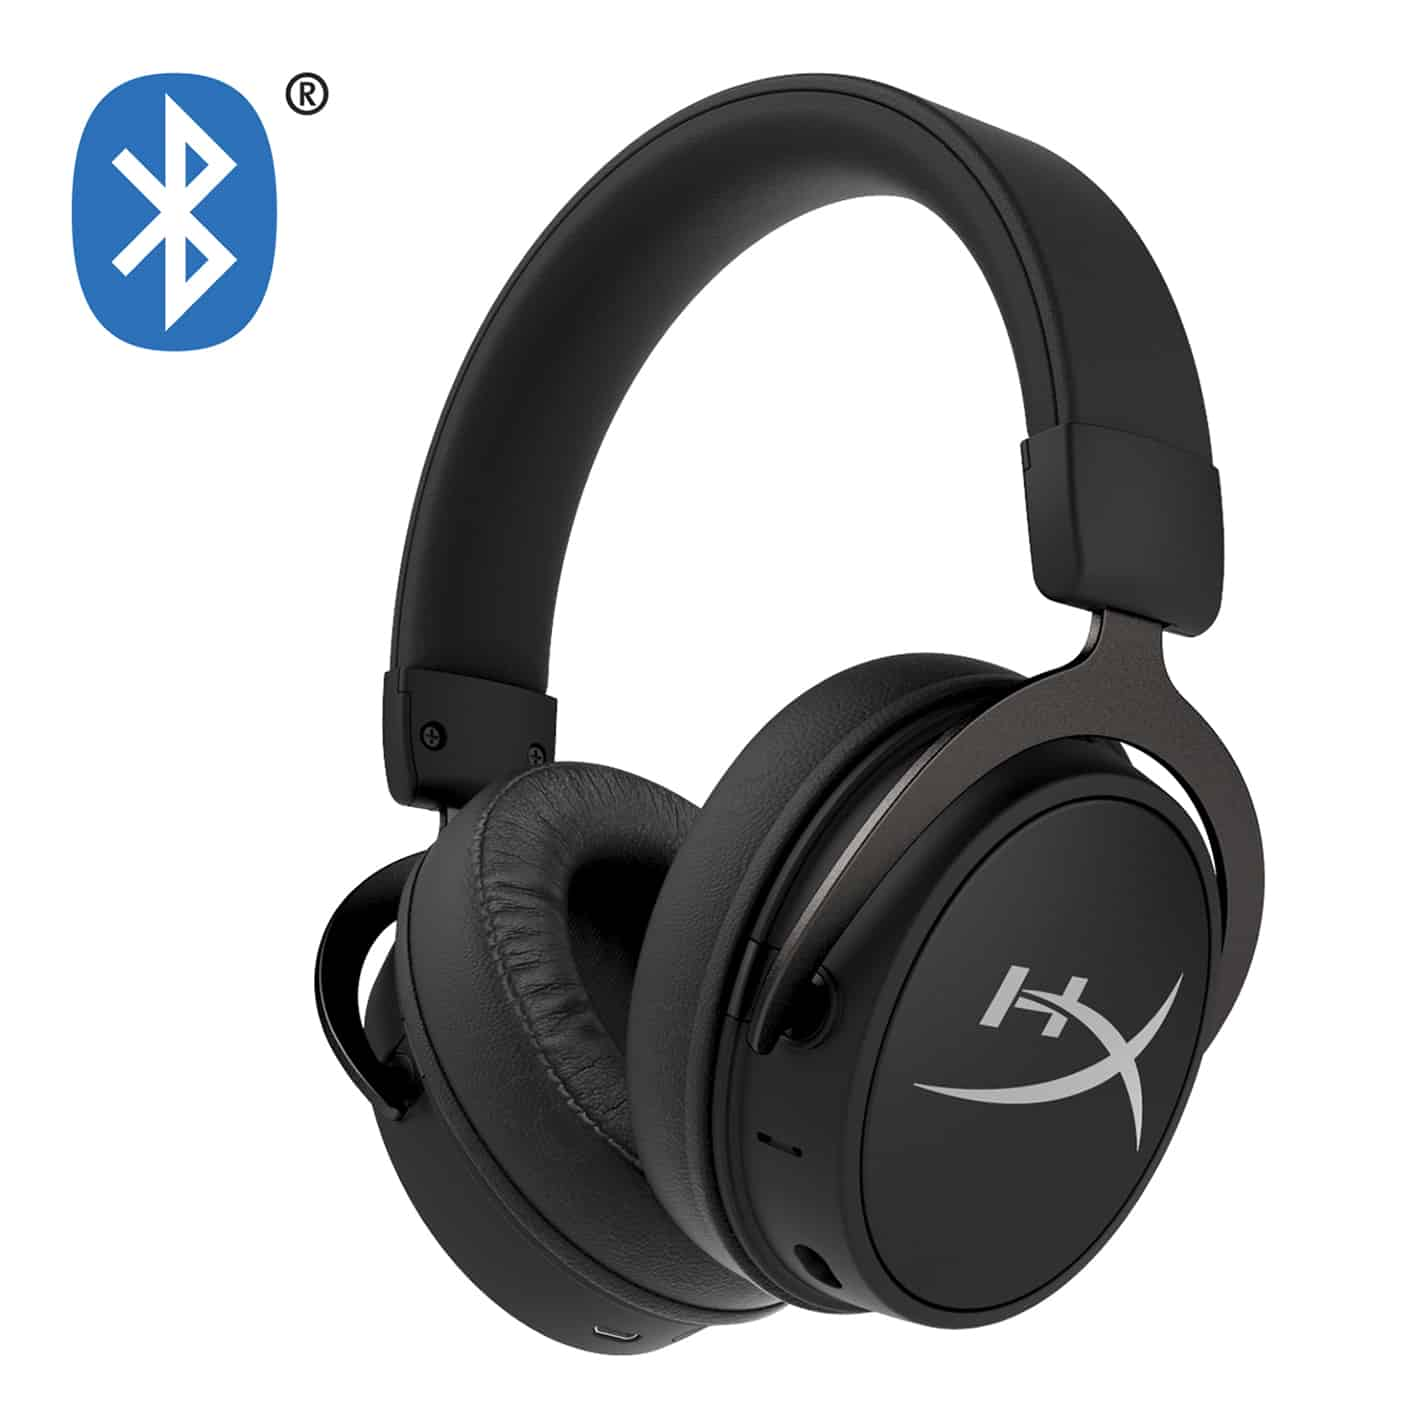 HyperX Cloud MIX 1